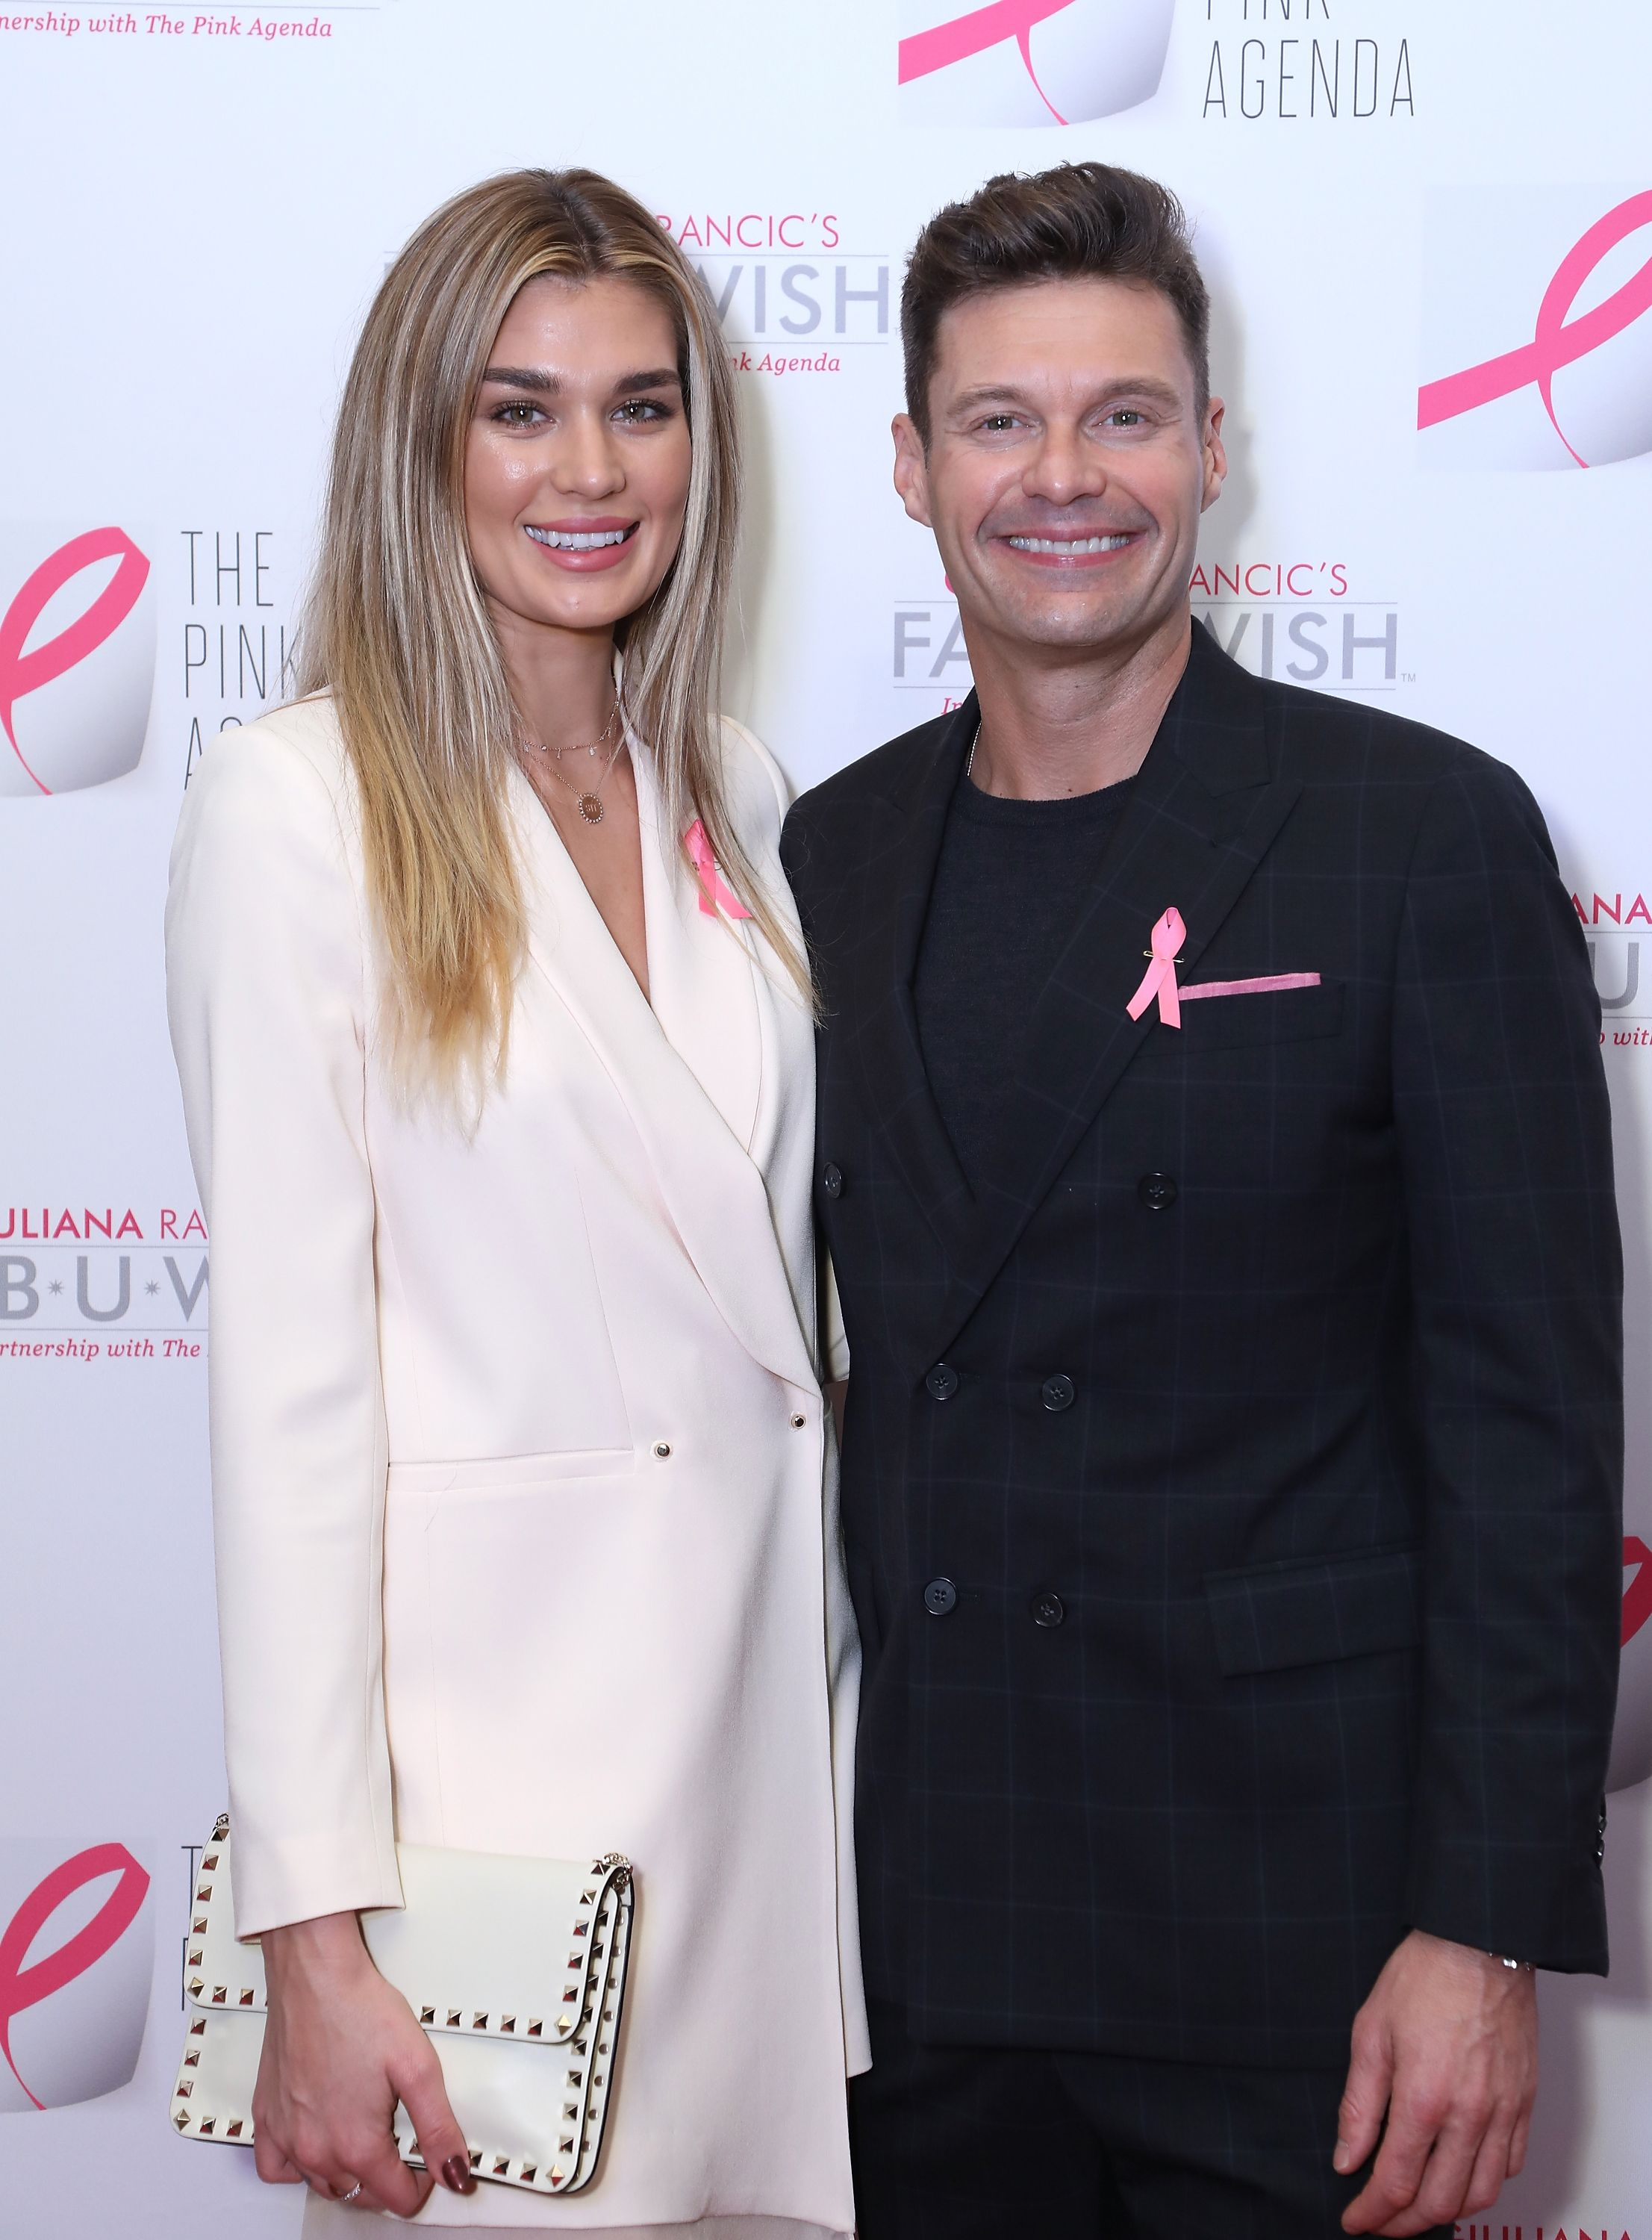 Shayna Taylor and Ryan Seacrest during The Pink Agenda's Annual Gala at Tribeca Rooftop on October 11, 2018 in New York City. | Source: Getty Images